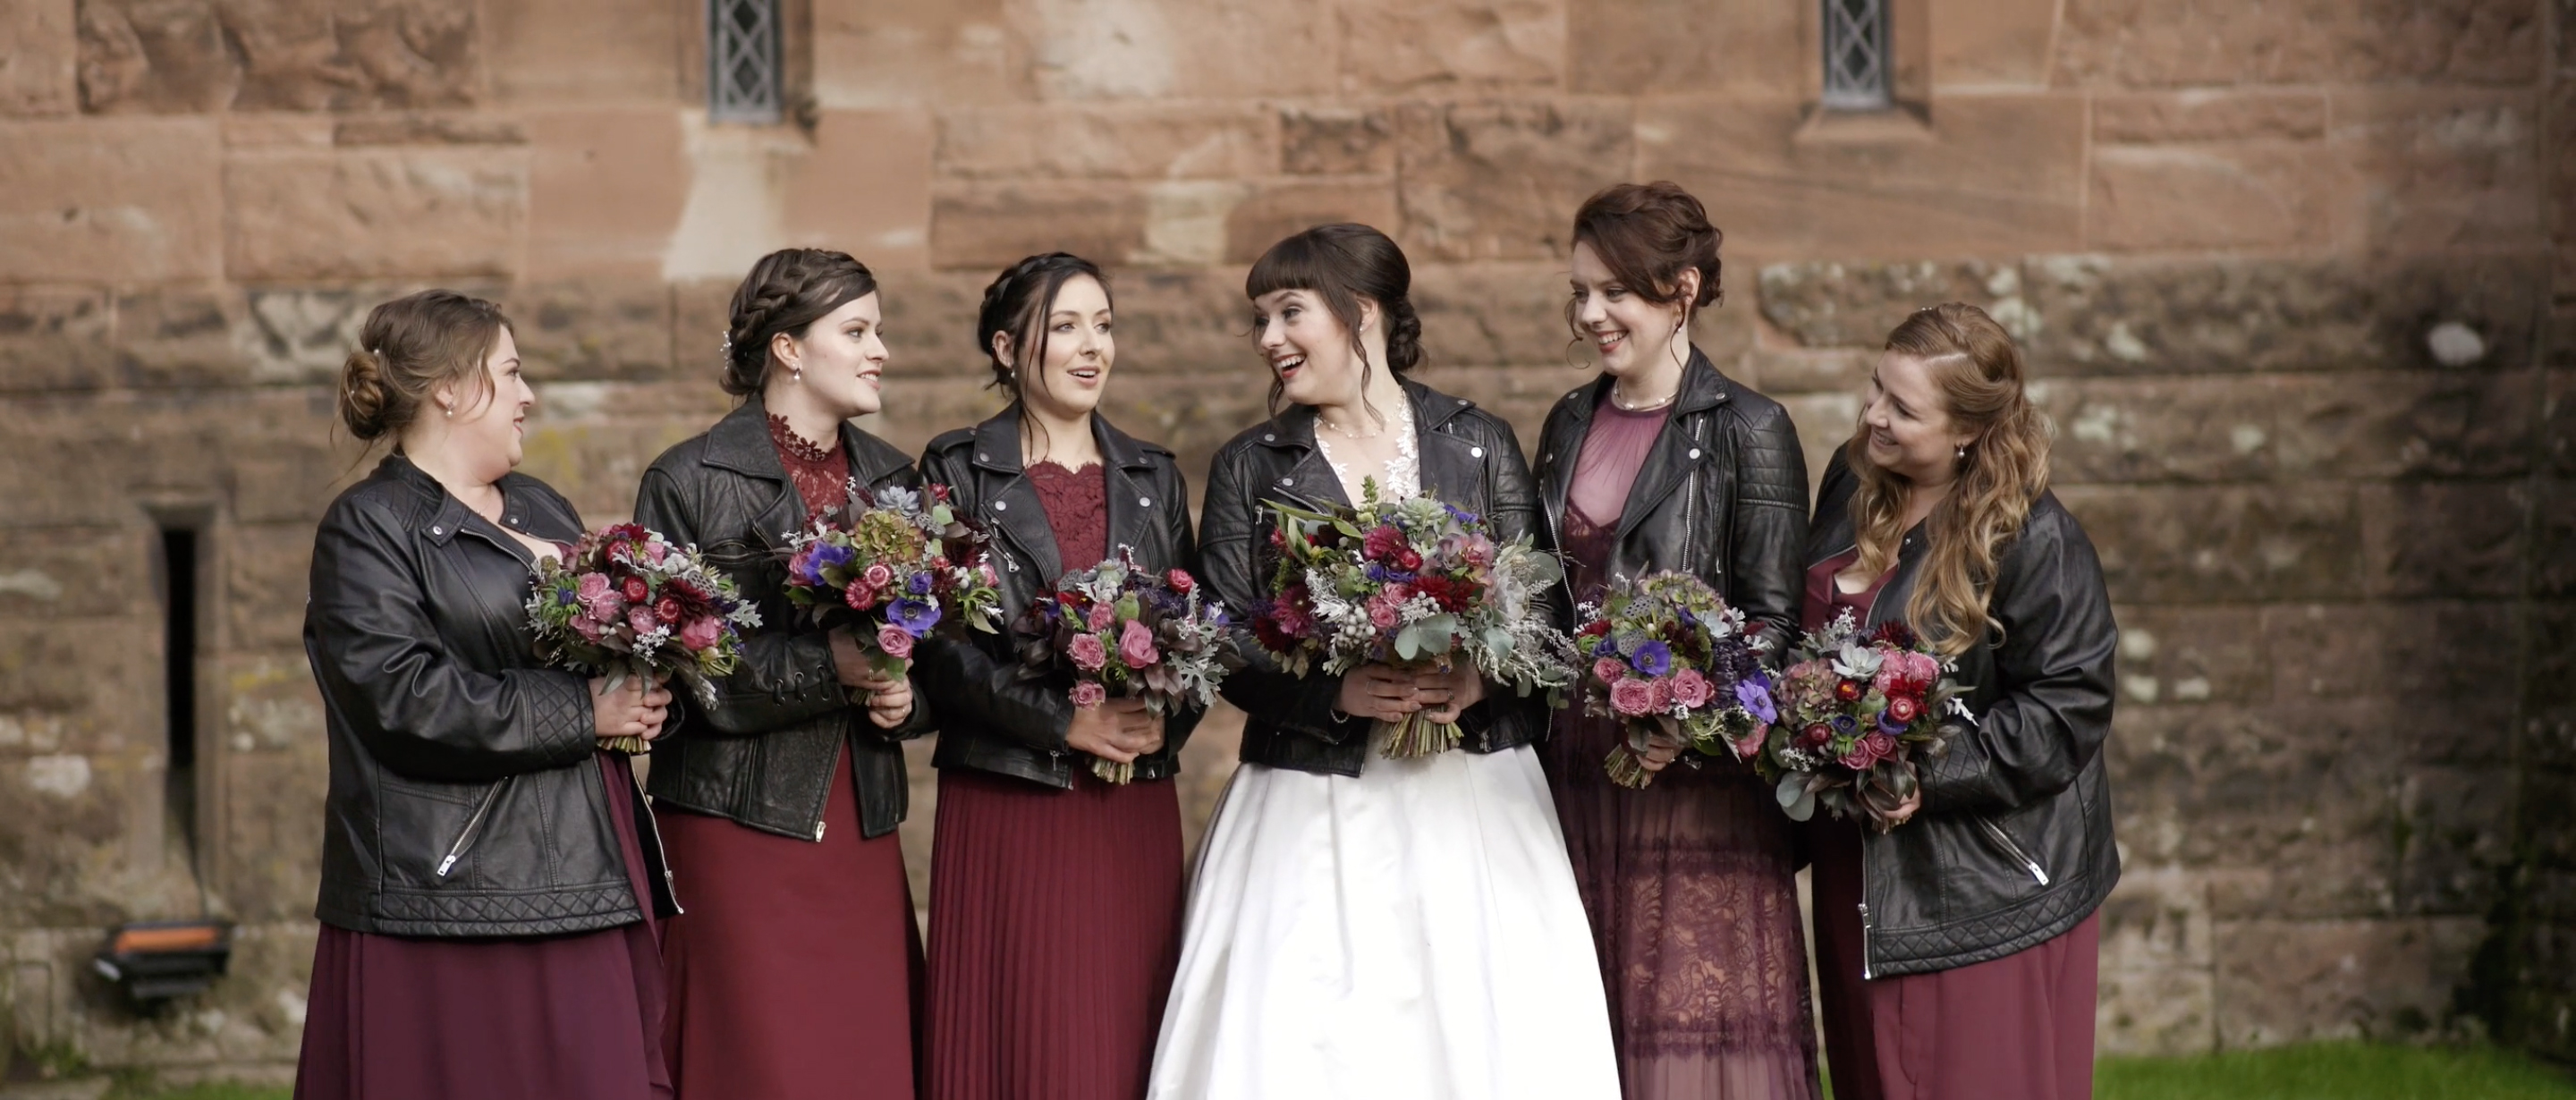 alternative wedding inspiration leather jacket bride peckforton castle video cheshire